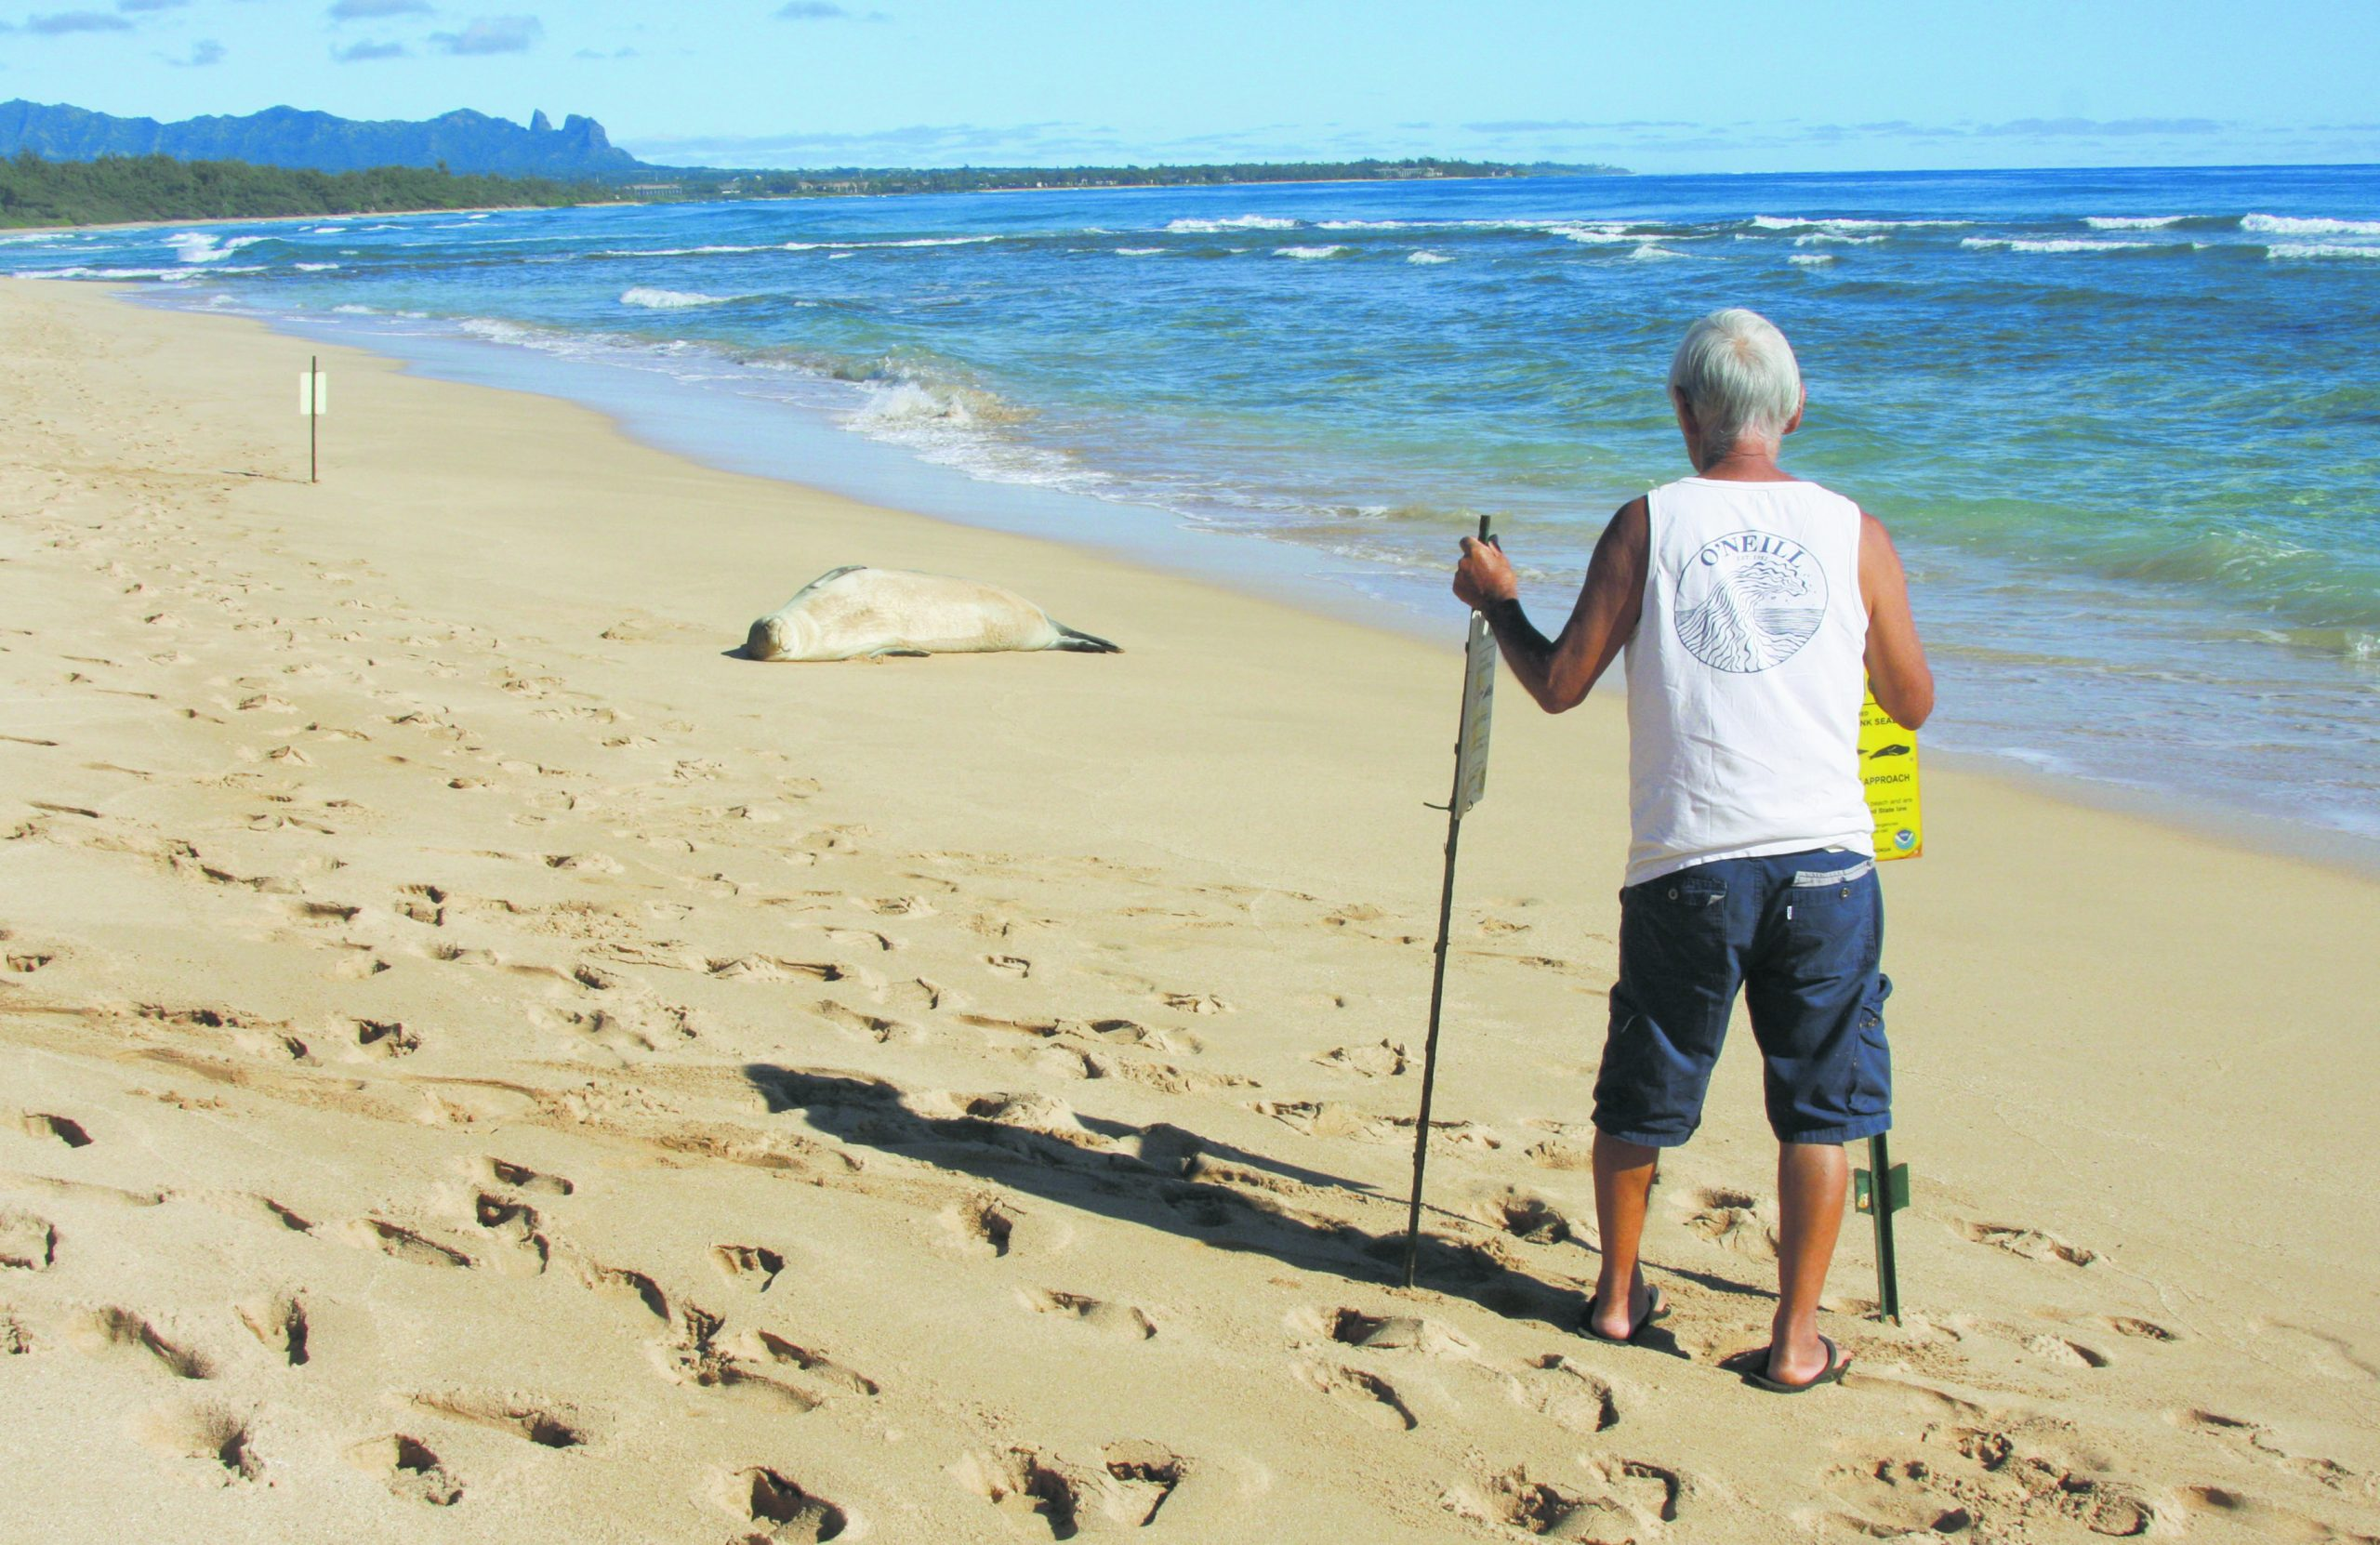 Lloyd Miyashiro sets up signs on the beach, warning the public to stay at least 50 feet away from the sunning Hawaiian monk seal. (Hawaiian monk seal photos by Ron Morinishi)